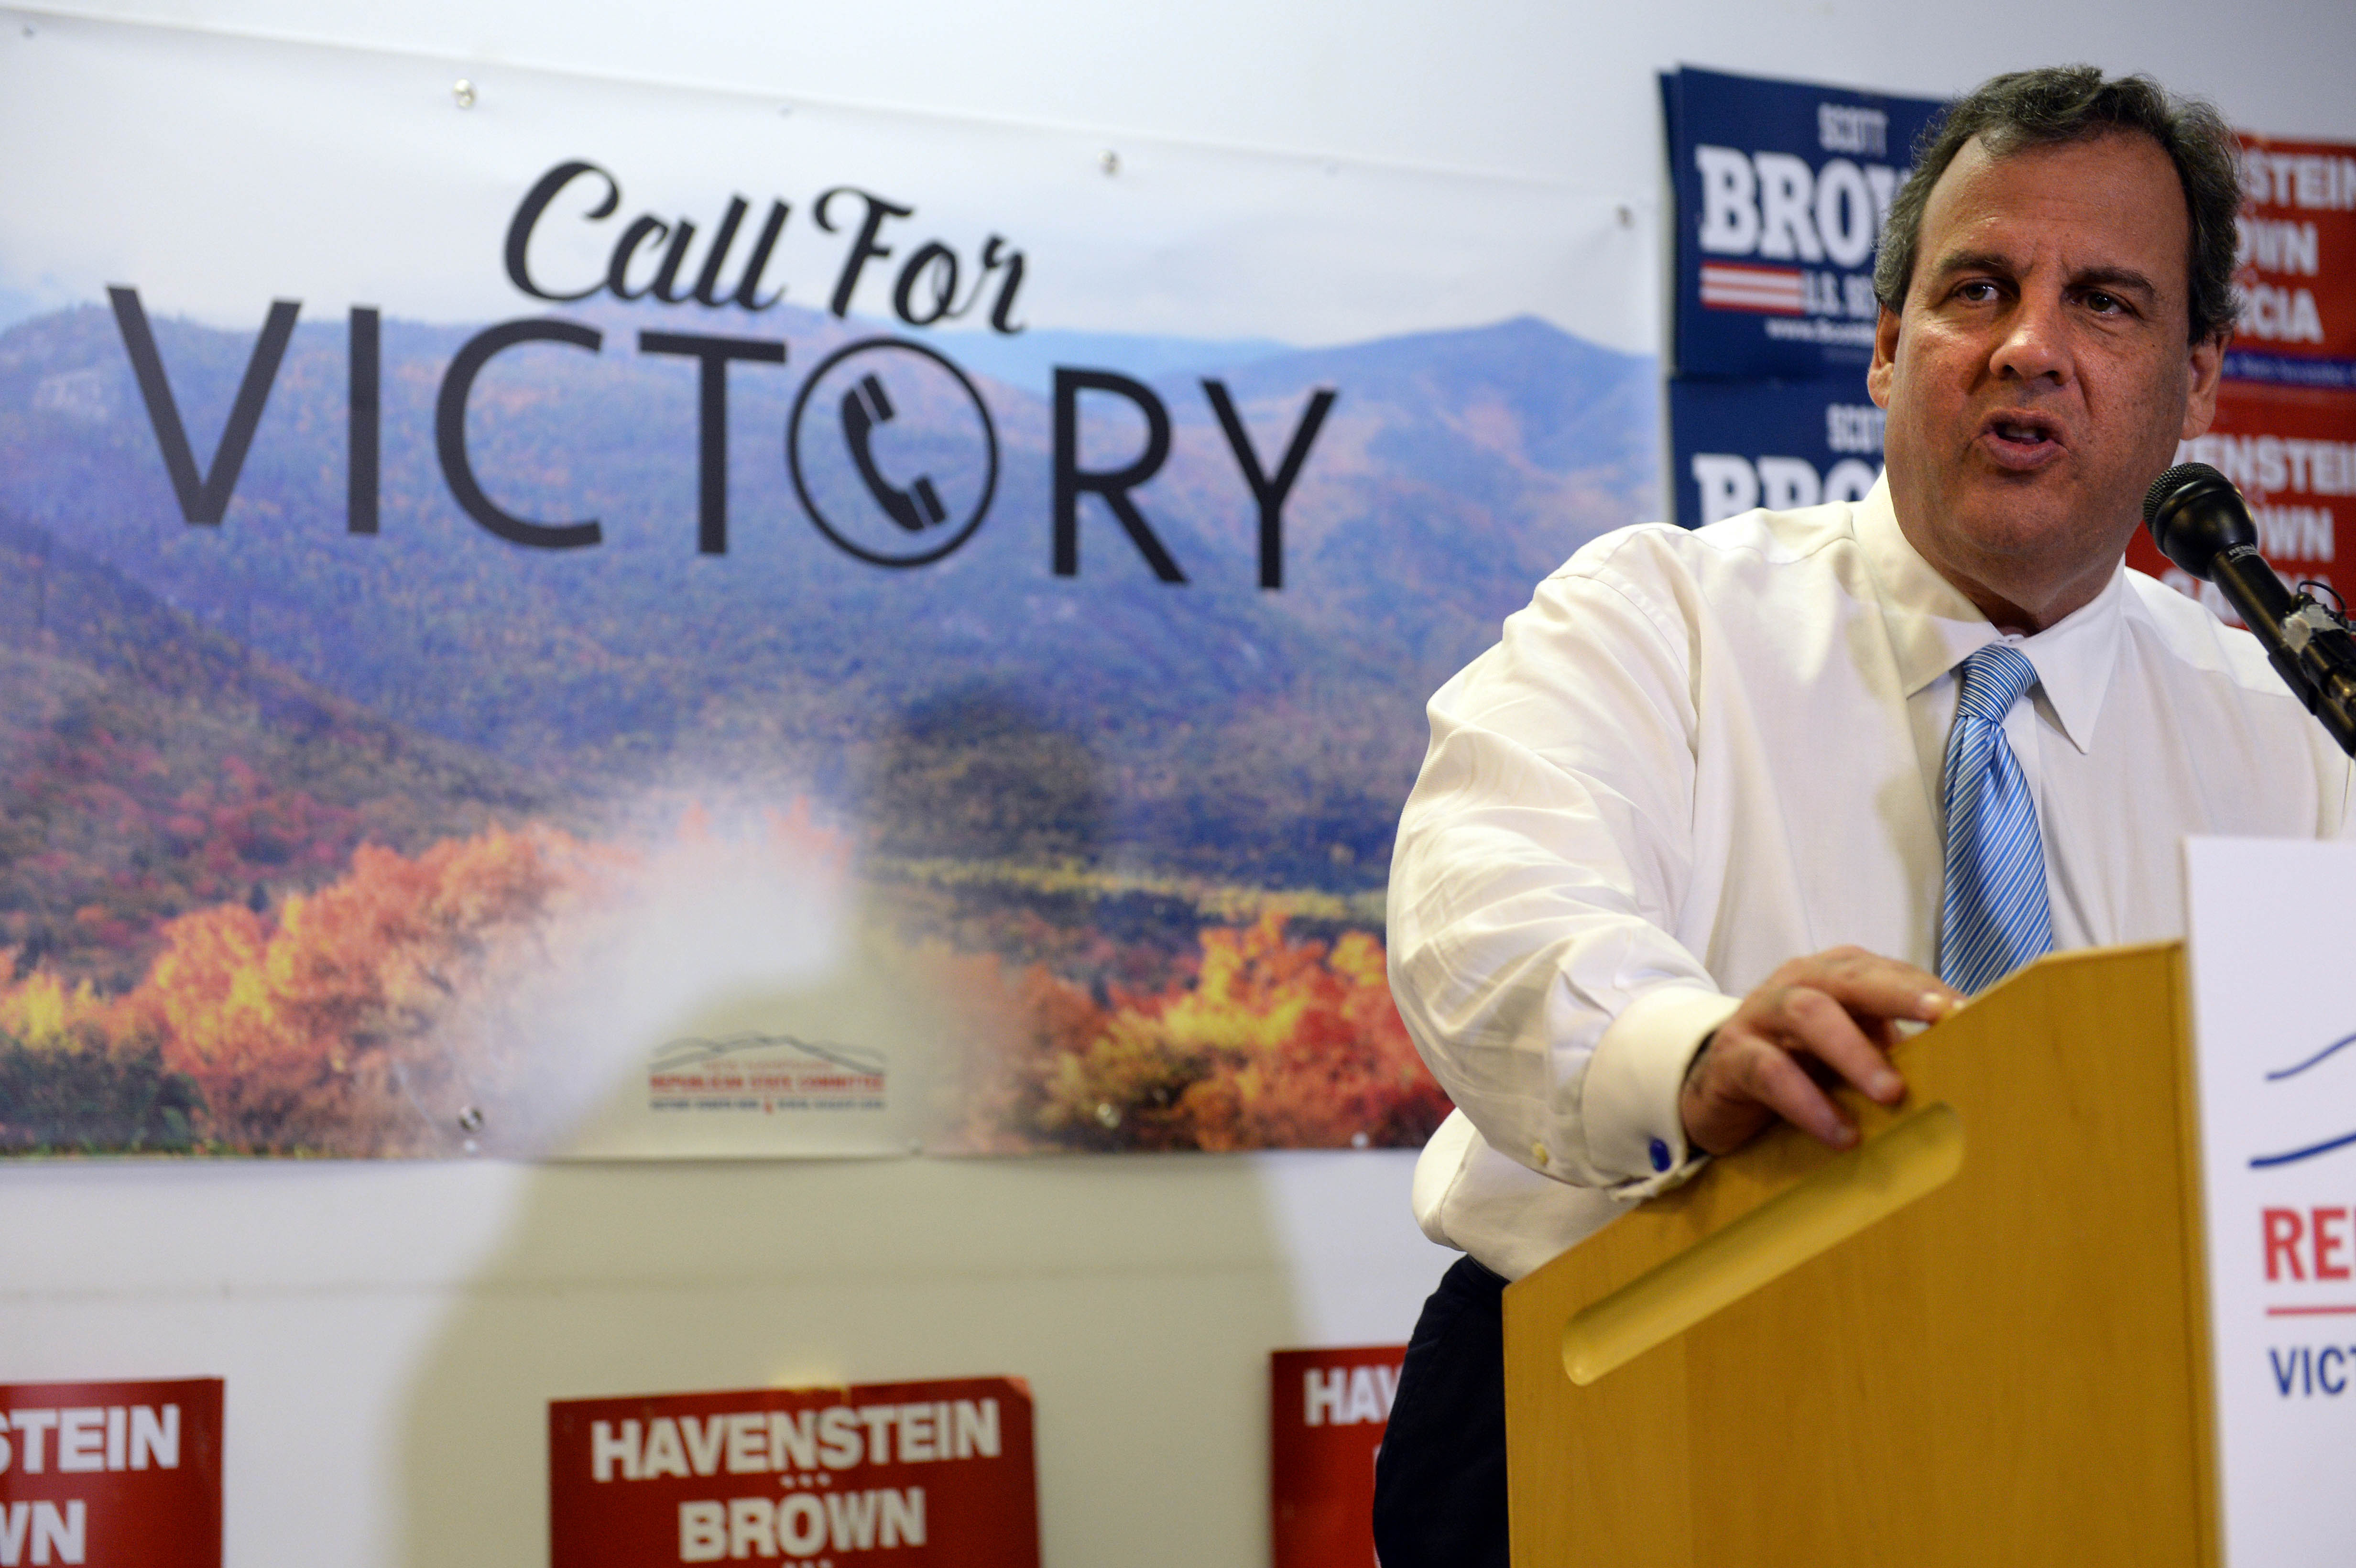 New Jersey Gov. Chris Christie speaks at the New Hampshire GOP's headquarters in Salem, where he introduced Senate candidate Scott Brown on September 17, 2014. (Darren McCollester/Getty Images)